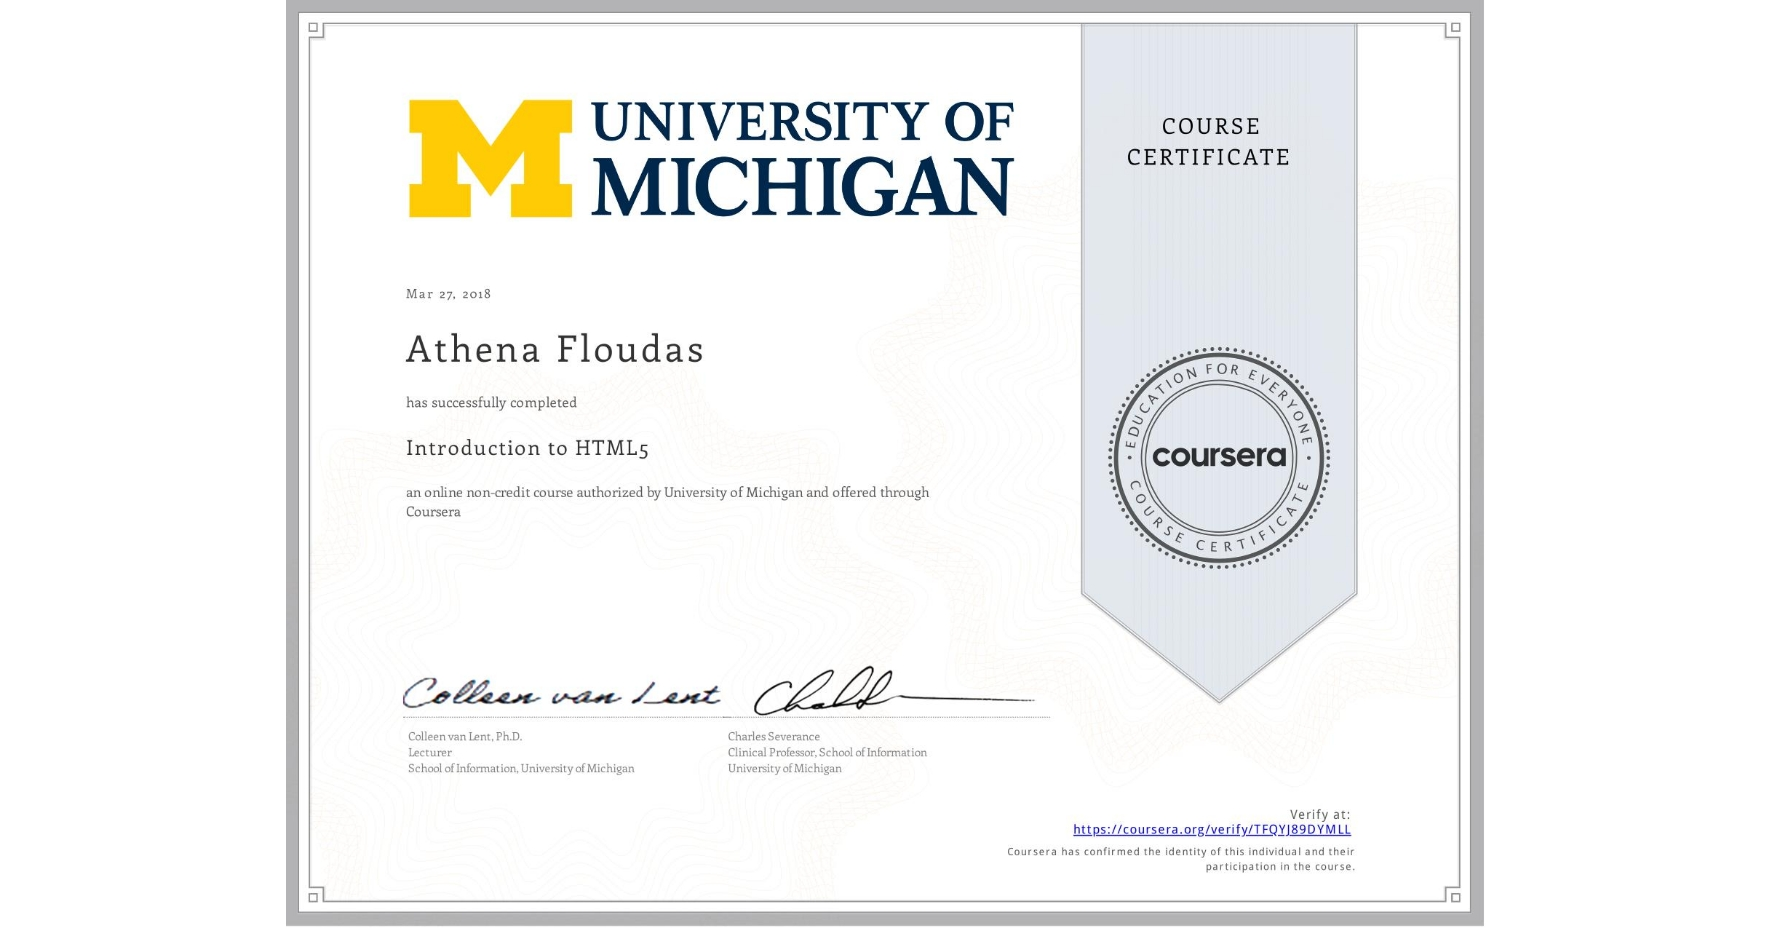 View certificate for Athena Floudas, Introduction to HTML5, an online non-credit course authorized by University of Michigan and offered through Coursera